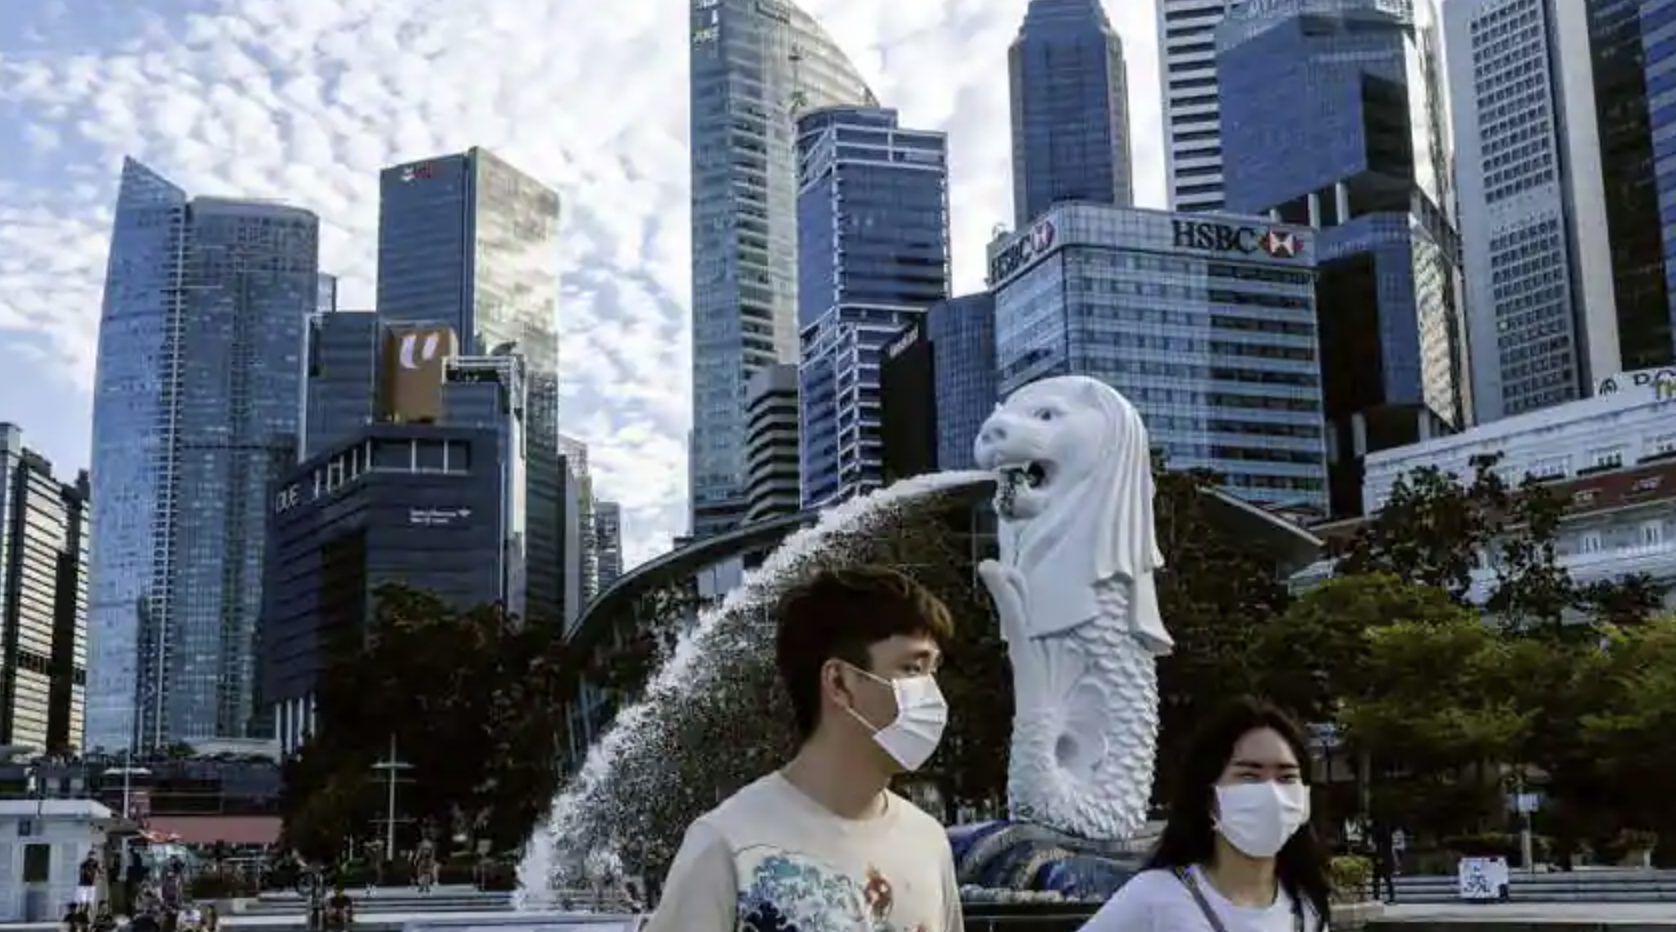 India Covid crisis: Singapore restricts entry approvals for foreign workers - News